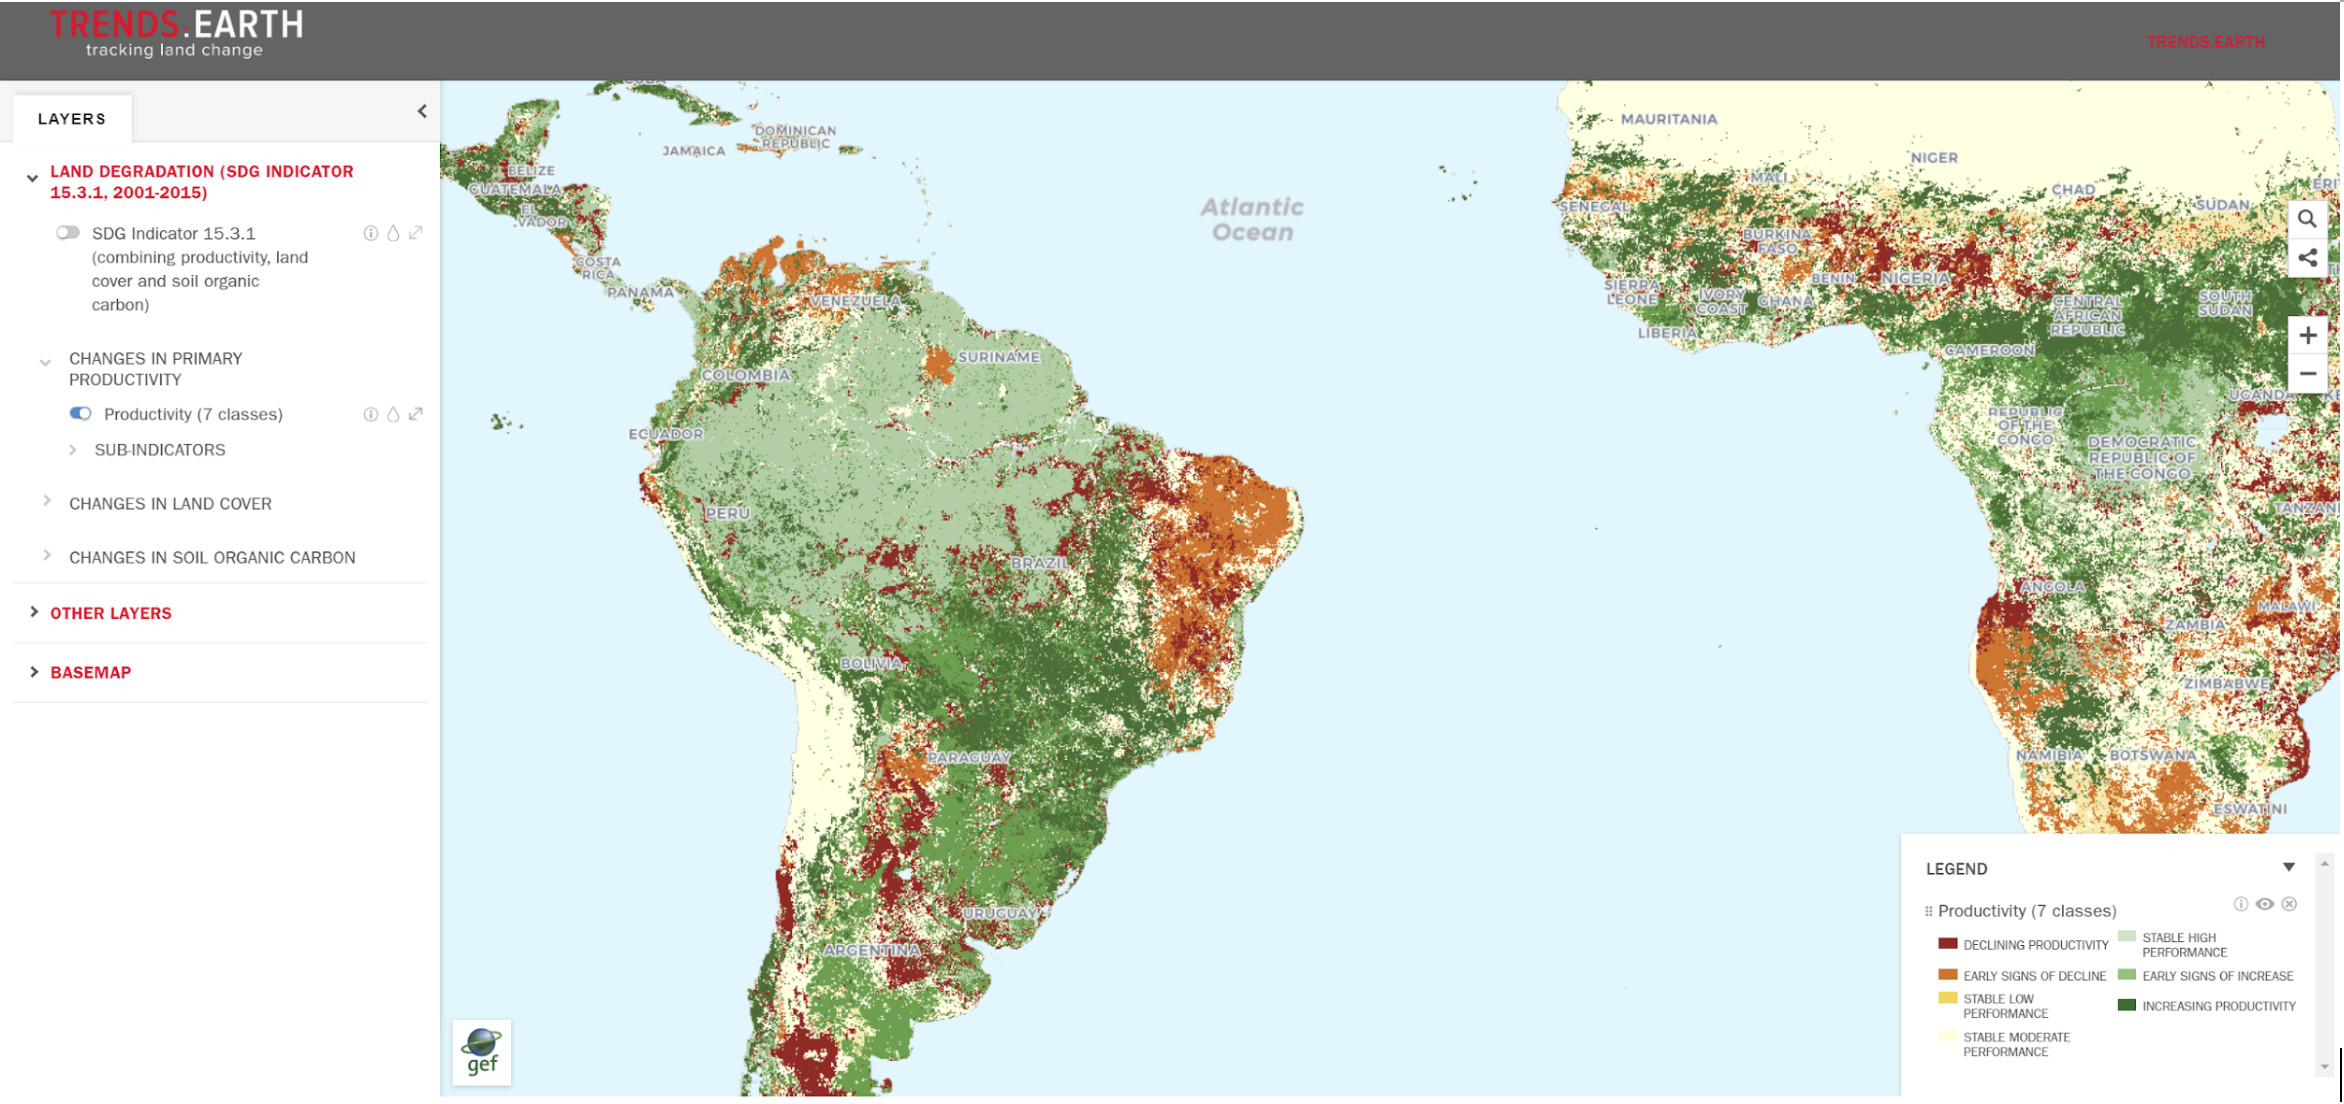 Image from Trends.Earth Resilience Atlas. Trends.Earth currently allows users to assess land degradation using desktop software. With the help of Google Earth Engine, we will produce a cloud-based web platform that will make the analysis more dynamic and relevant at local scales through the use of Landsat and Sentinel data.